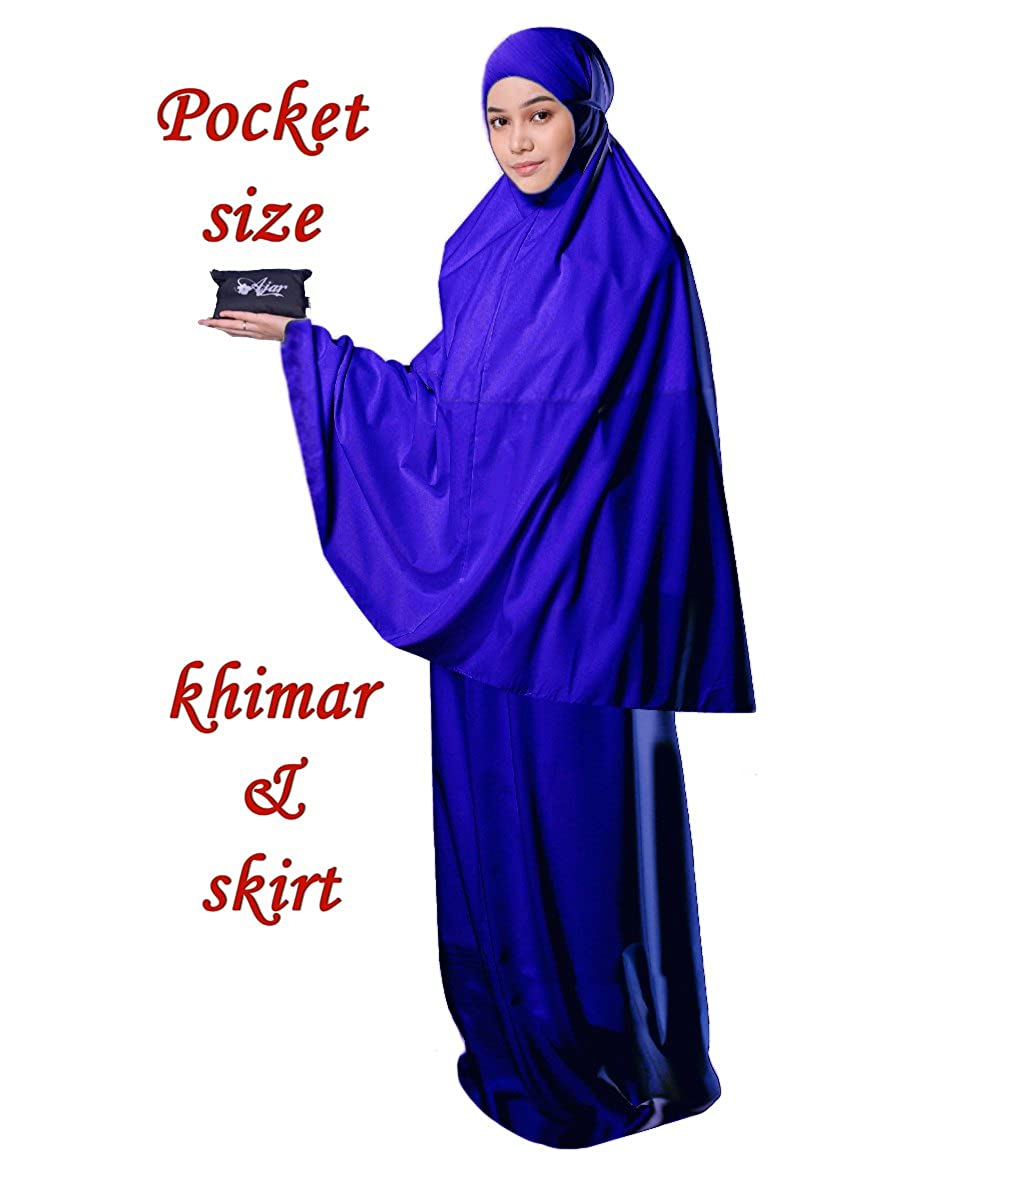 Muslim Women's Prayer Dress Pocket-Size Hijab Scarf Skirt Islamic Abaya by AJAR